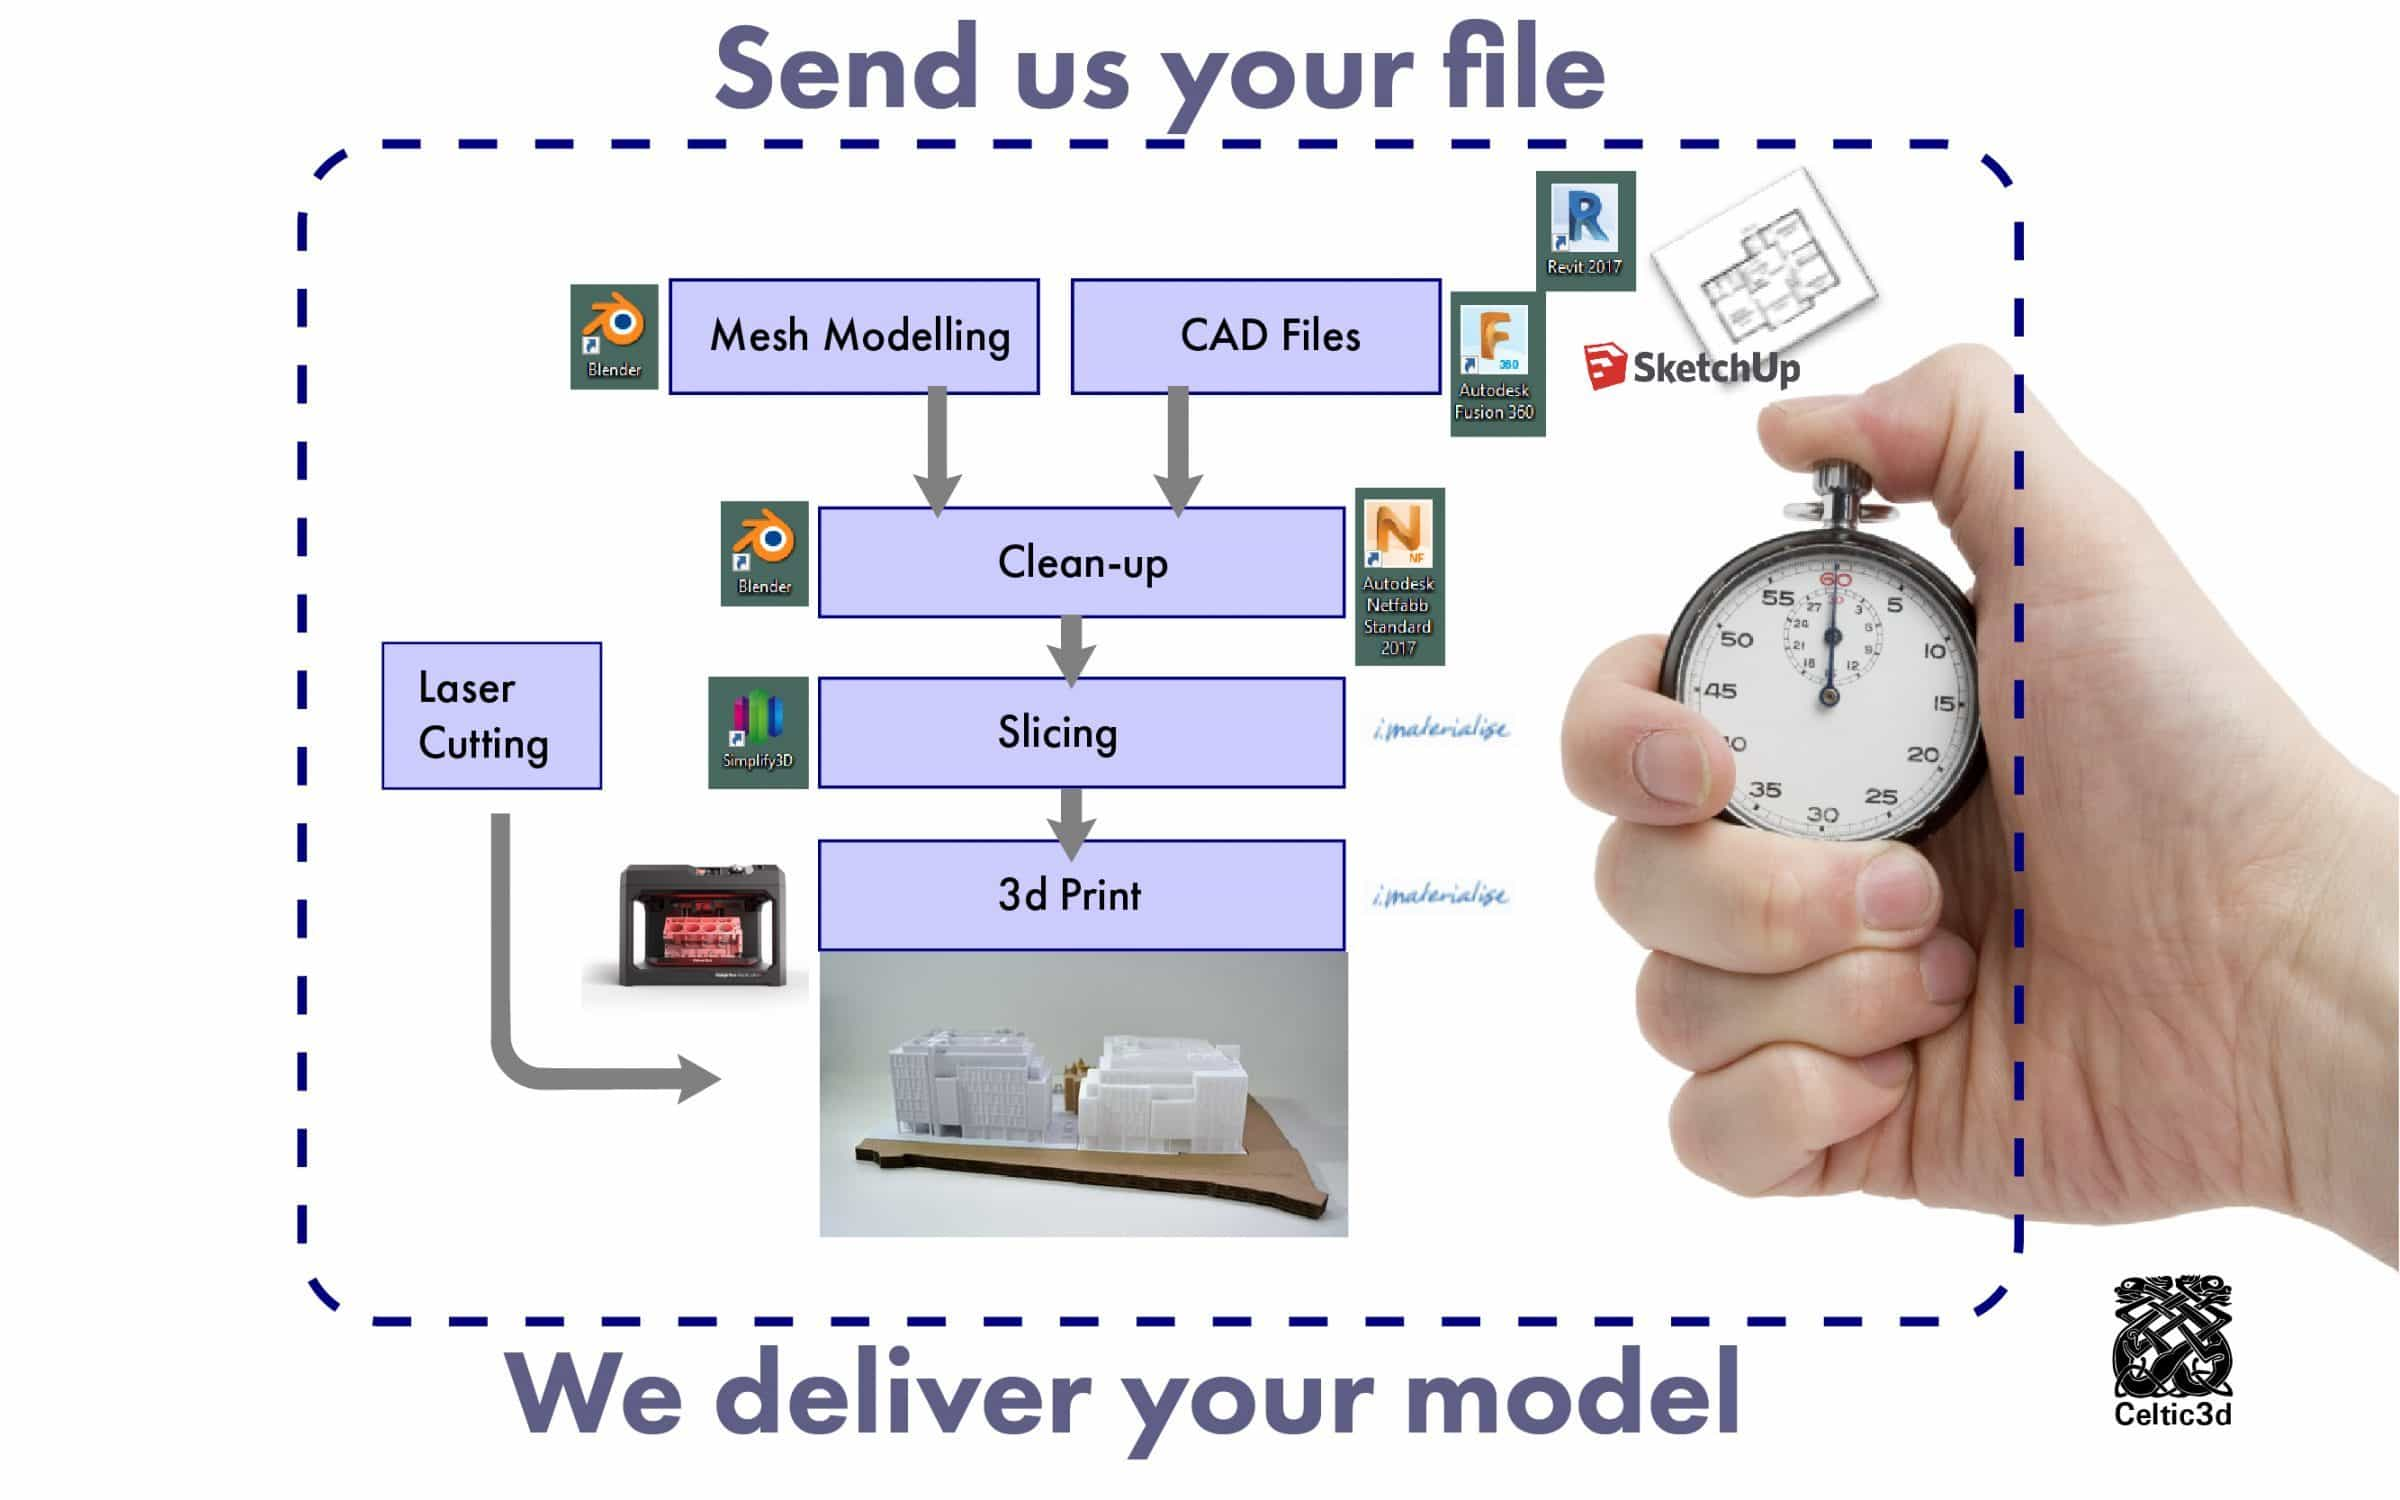 Send us your file, we deliver your model